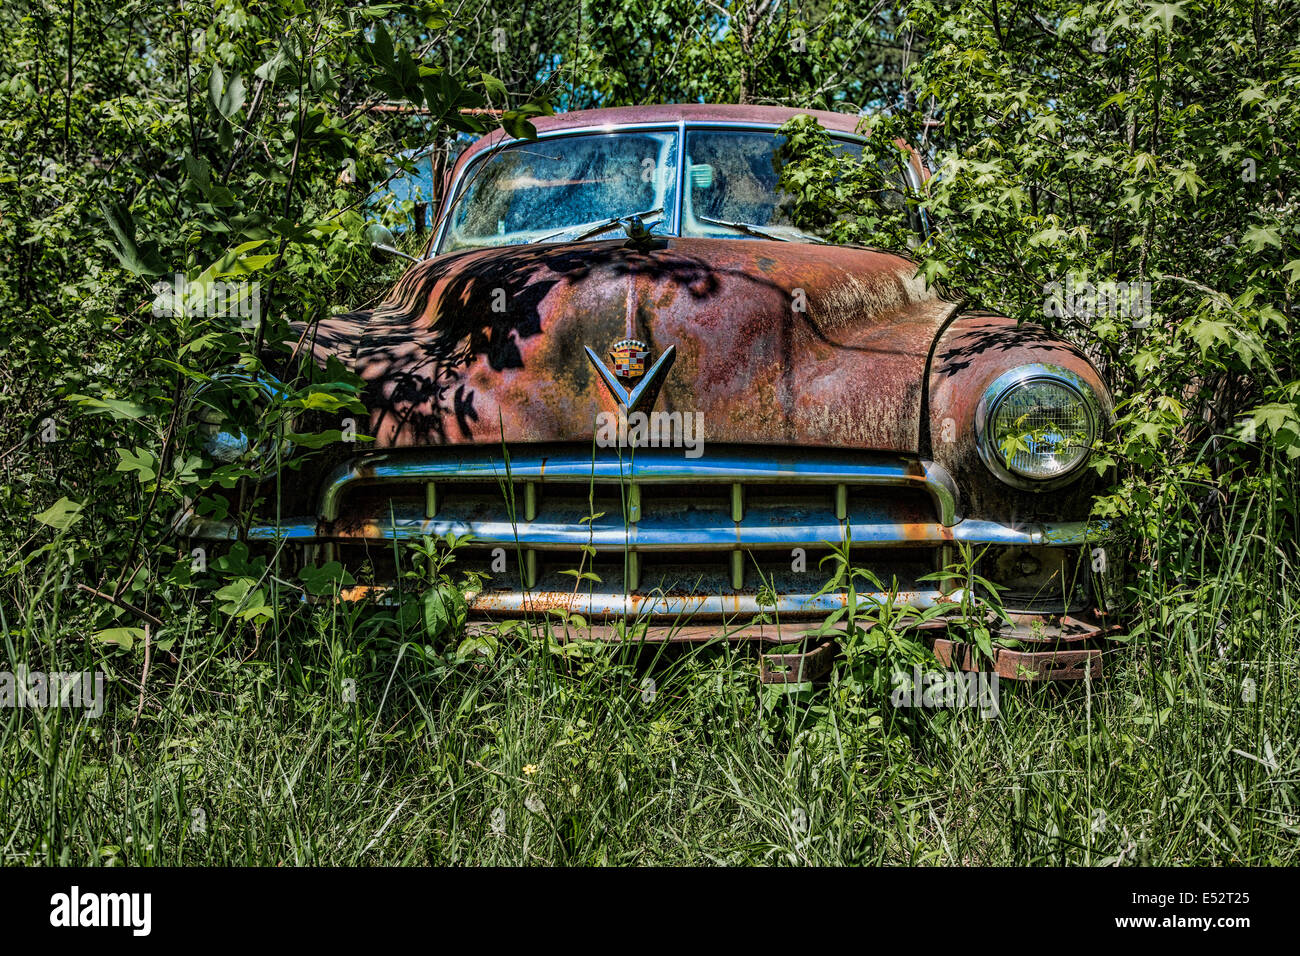 Rusted Junk Cars Trucks In Stock Photos & Rusted Junk Cars Trucks In ...